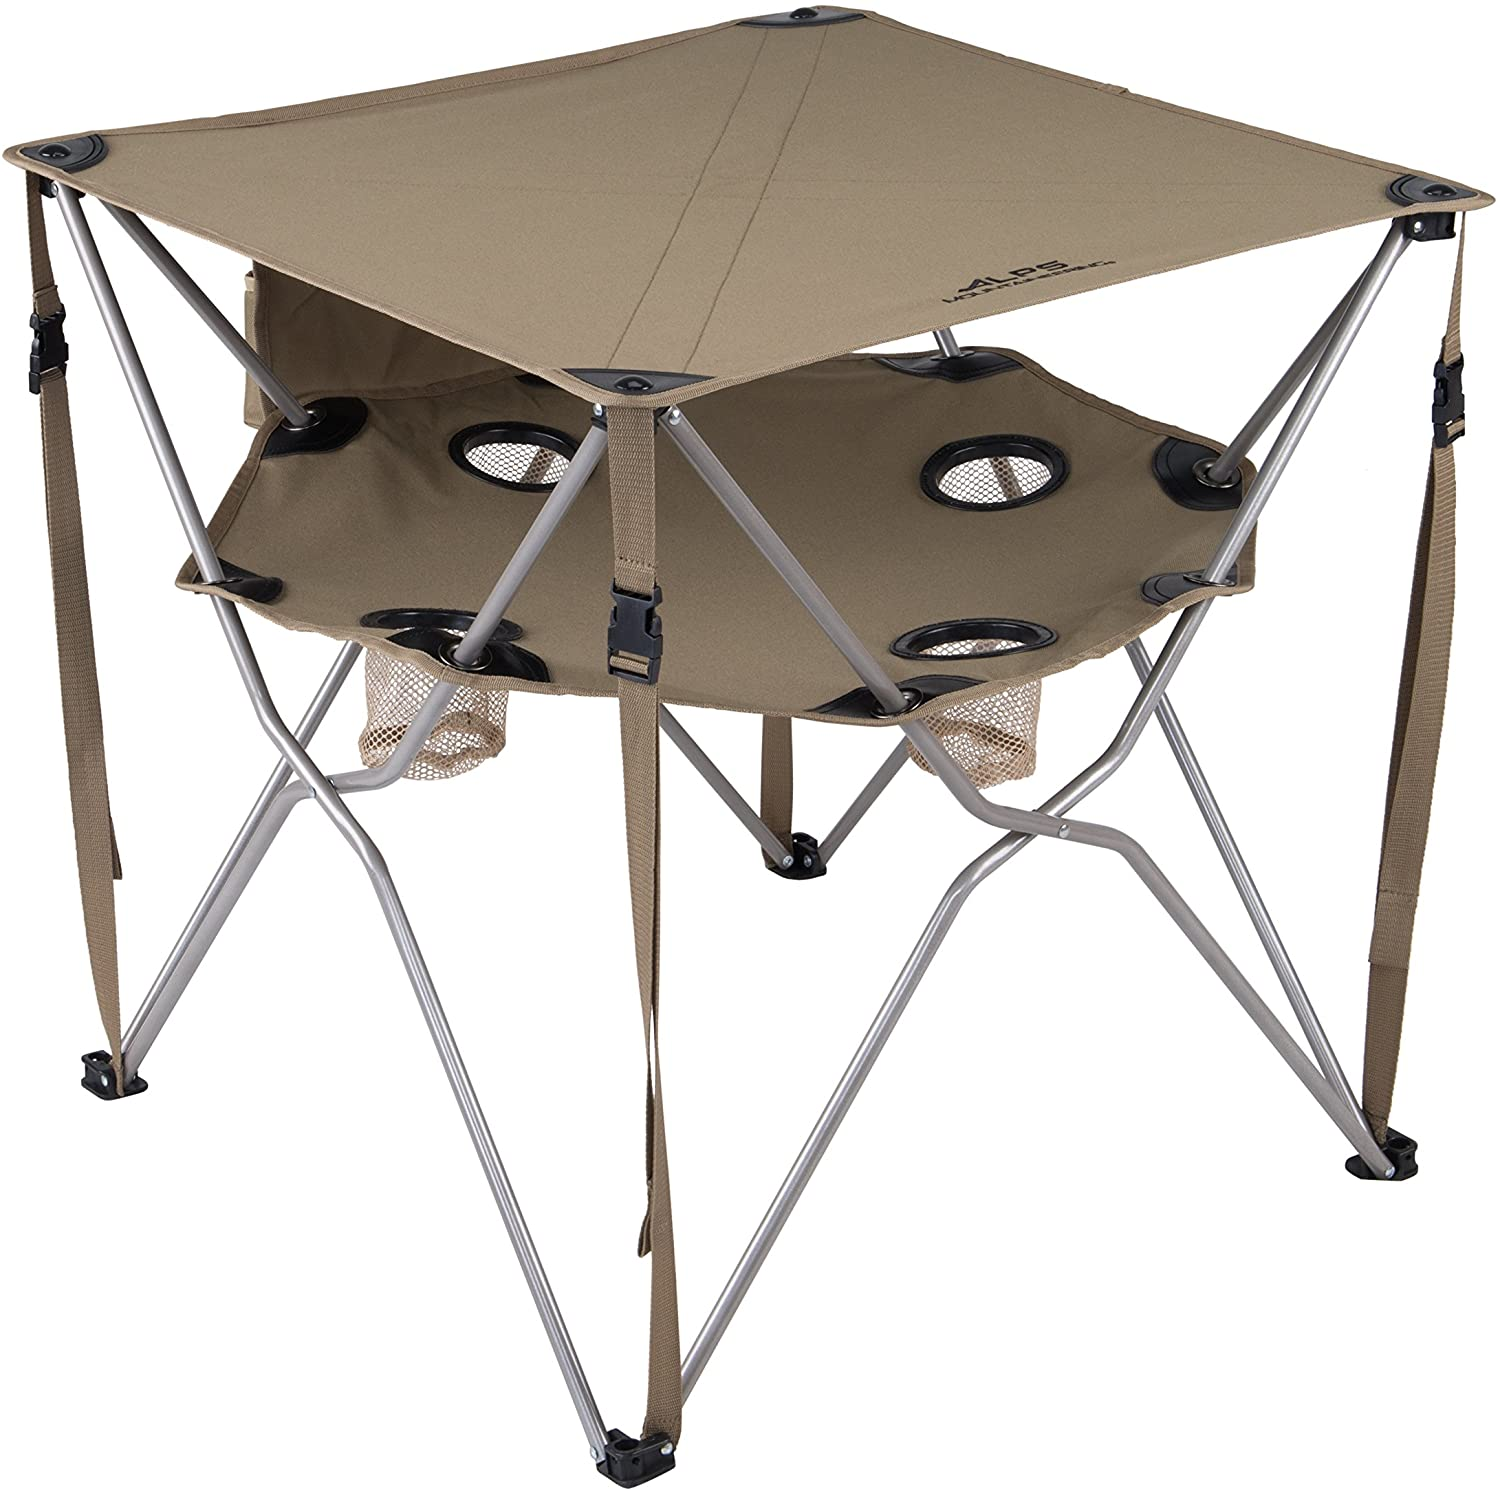 ALPS Mountaineering Folding Table